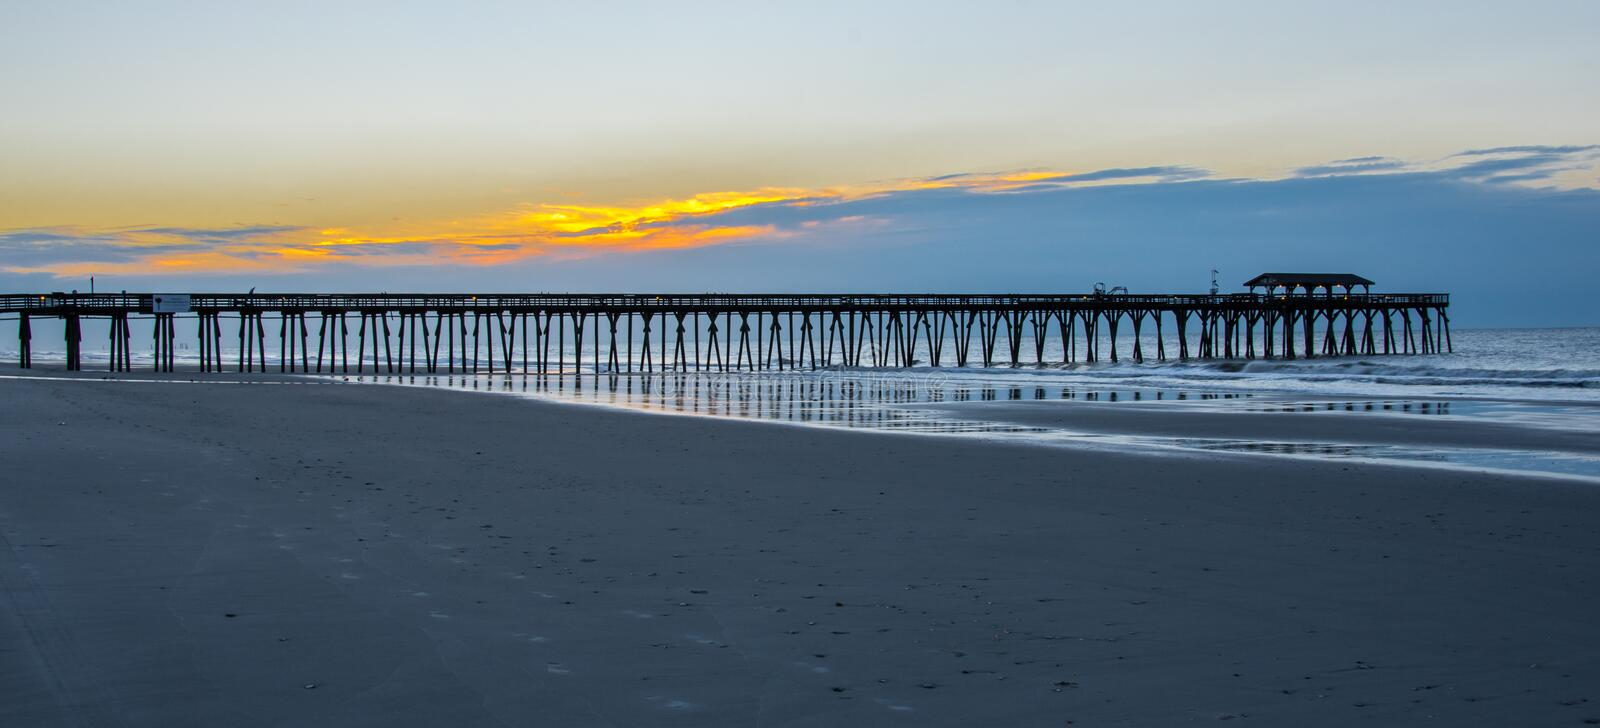 The Myrtle Beach, SC fishing pier in the sunrise stock photo